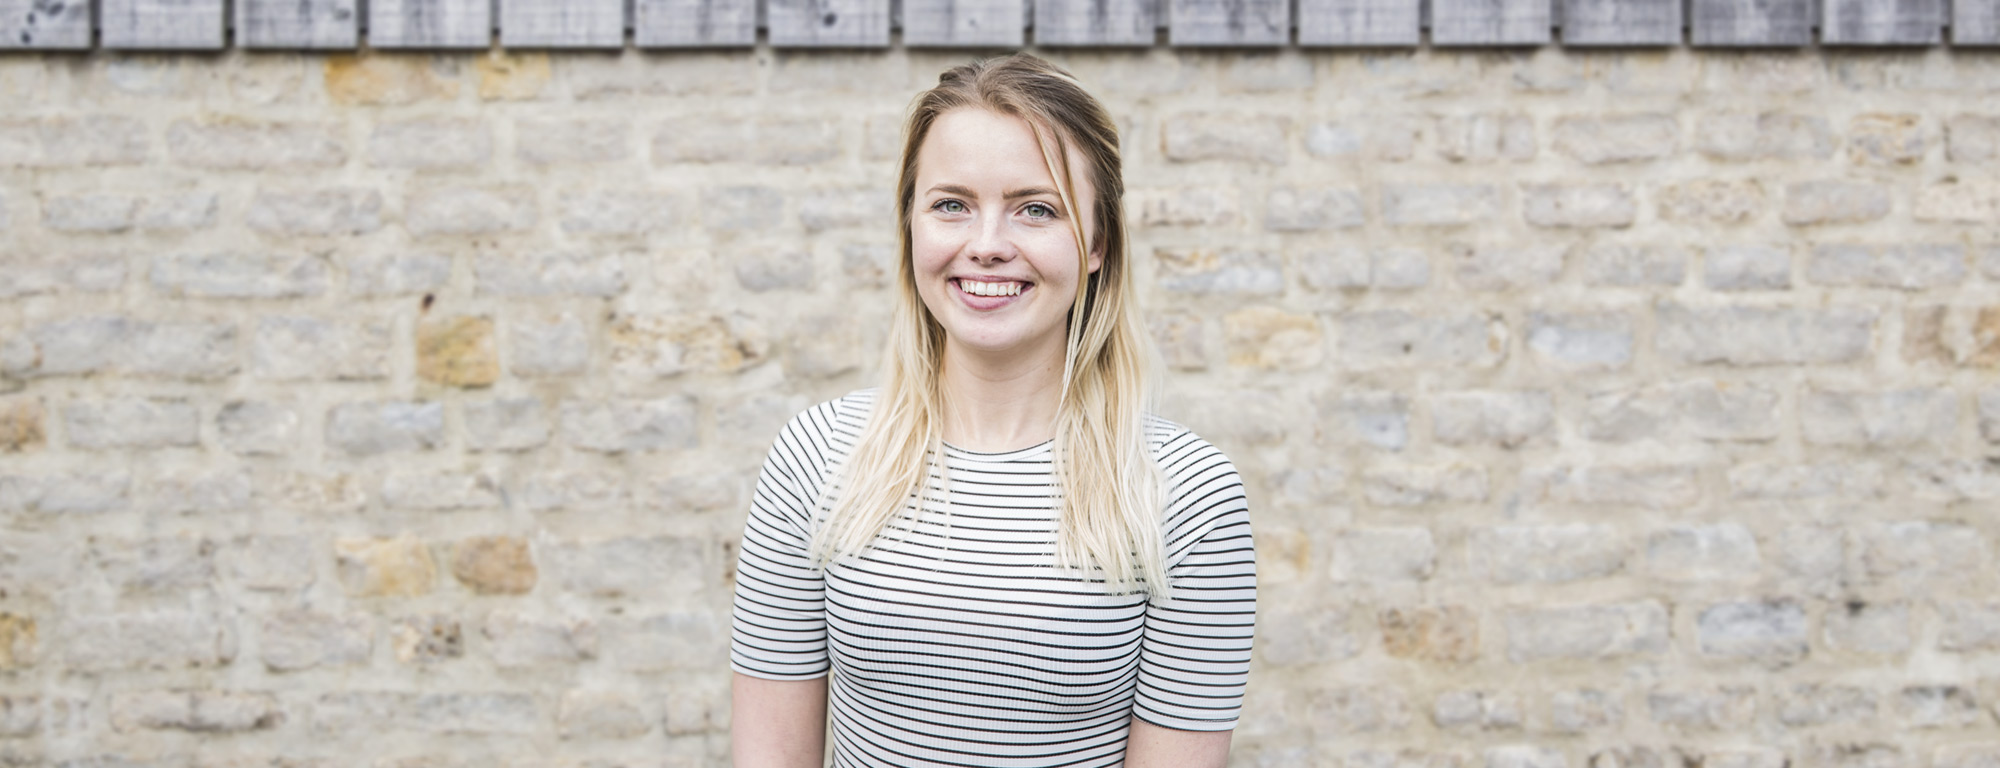 Welcome Kelly, our new Digital Marketing Executive